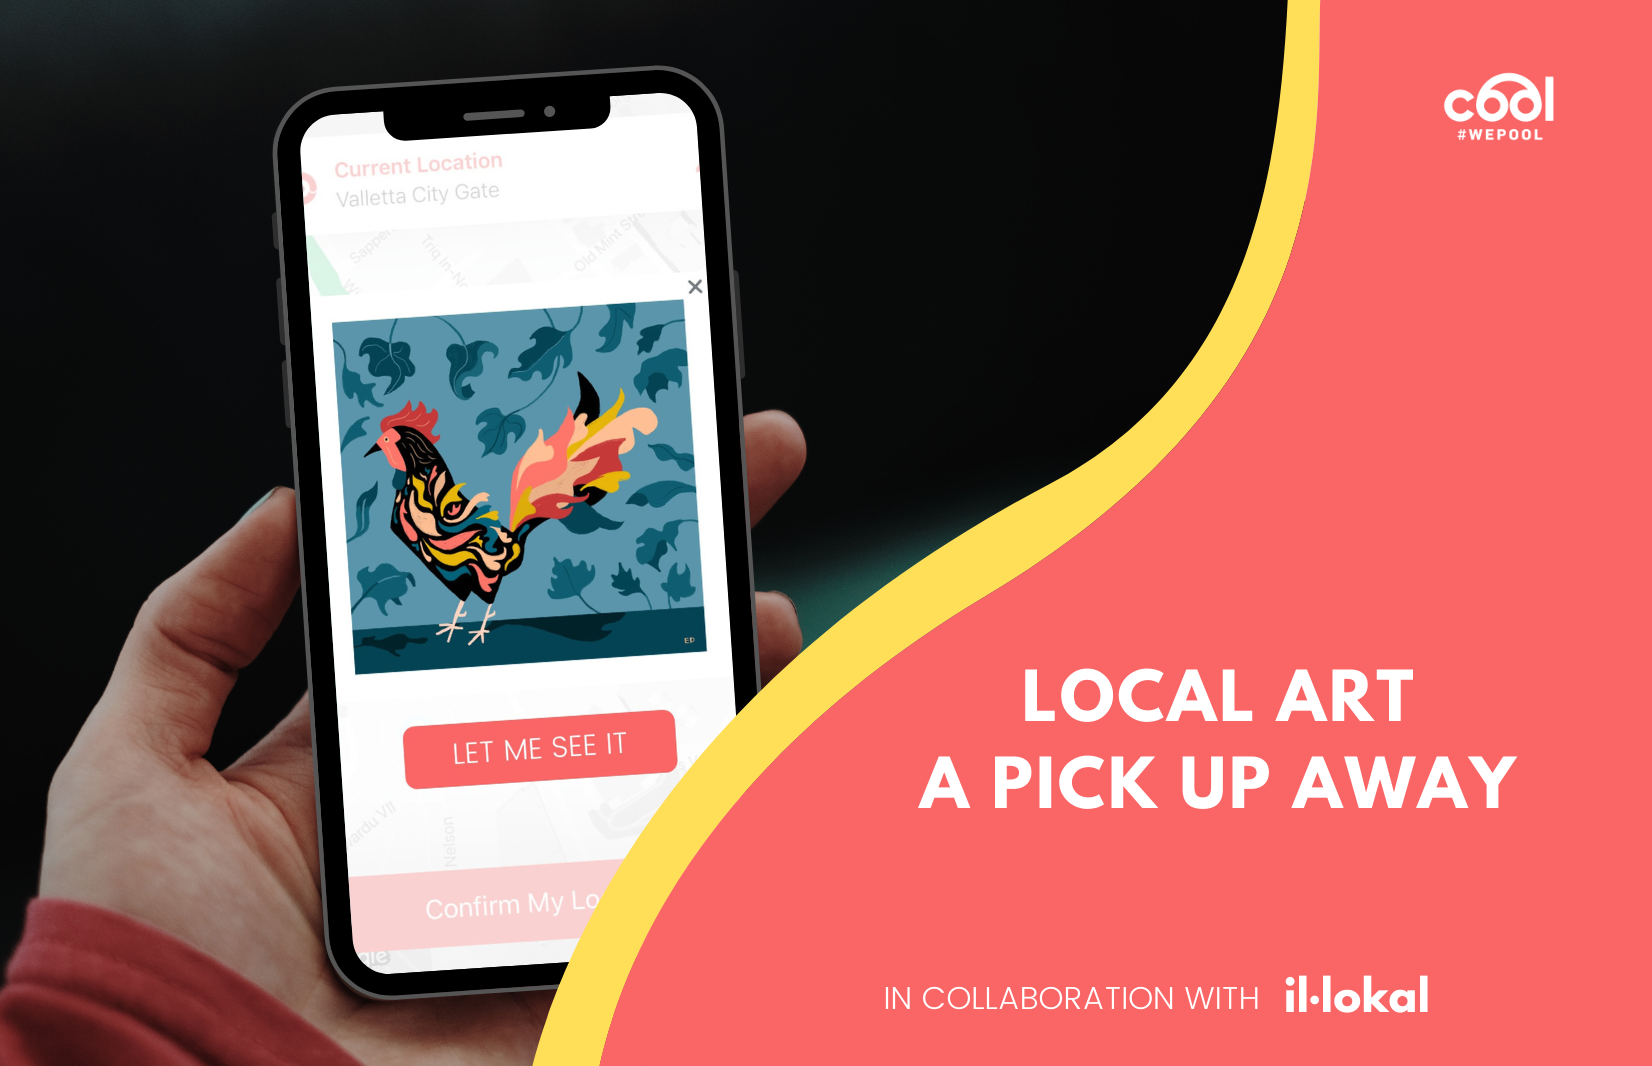 COOL and IL-LOKAL Promote Local Art with Unique Digital Exhibition